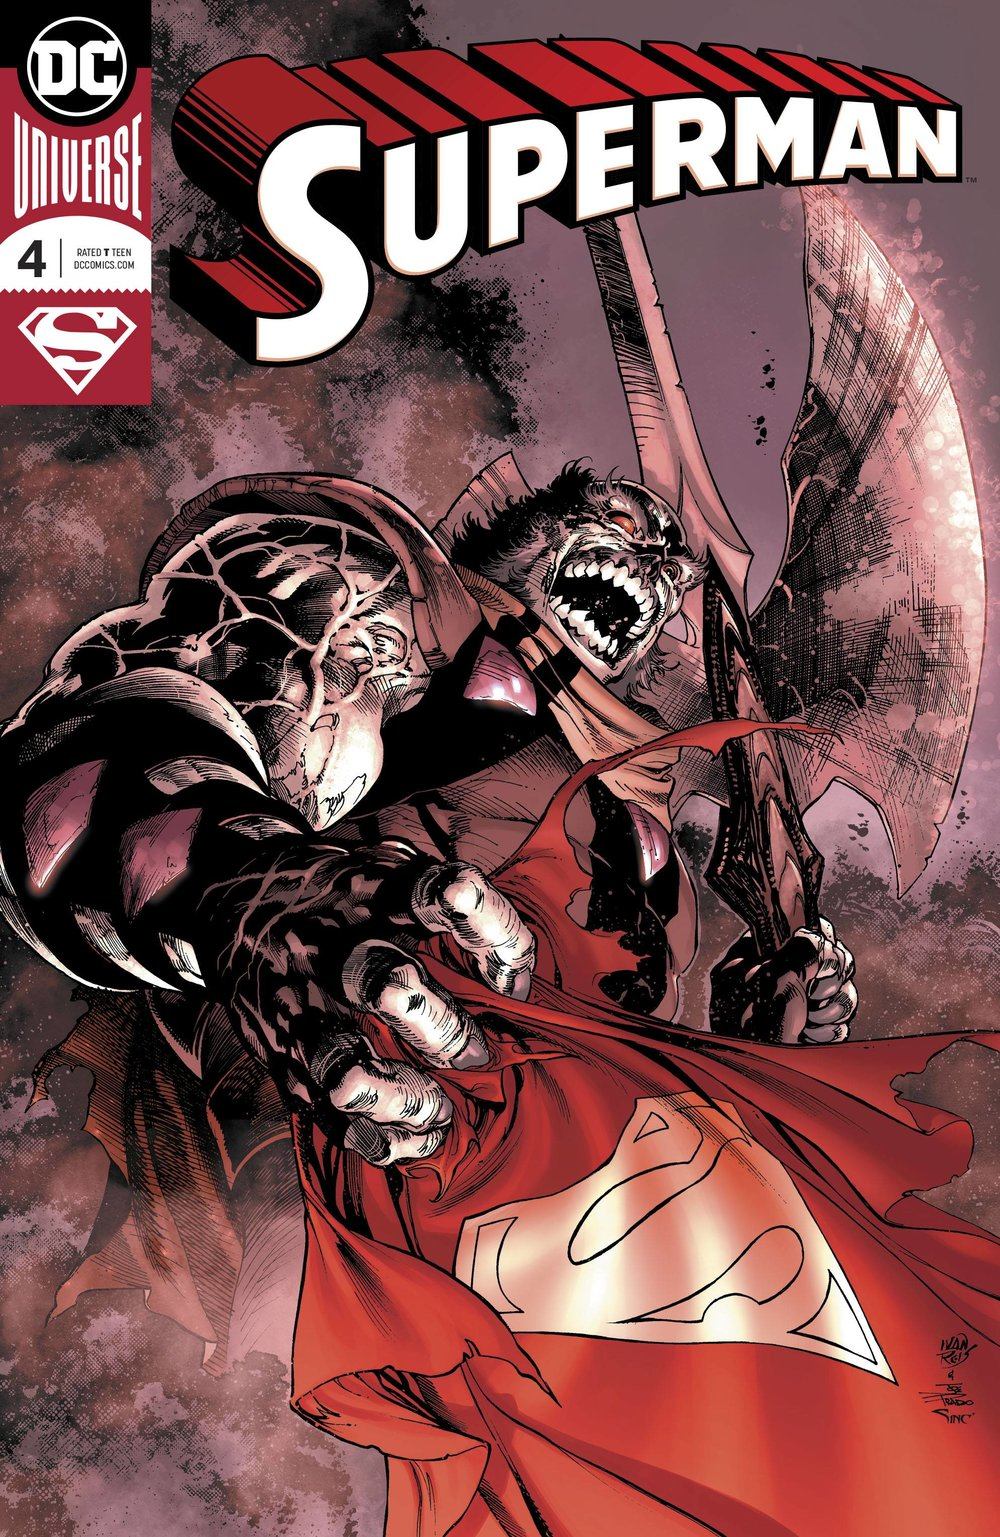 superman vol 5 issue 4 review